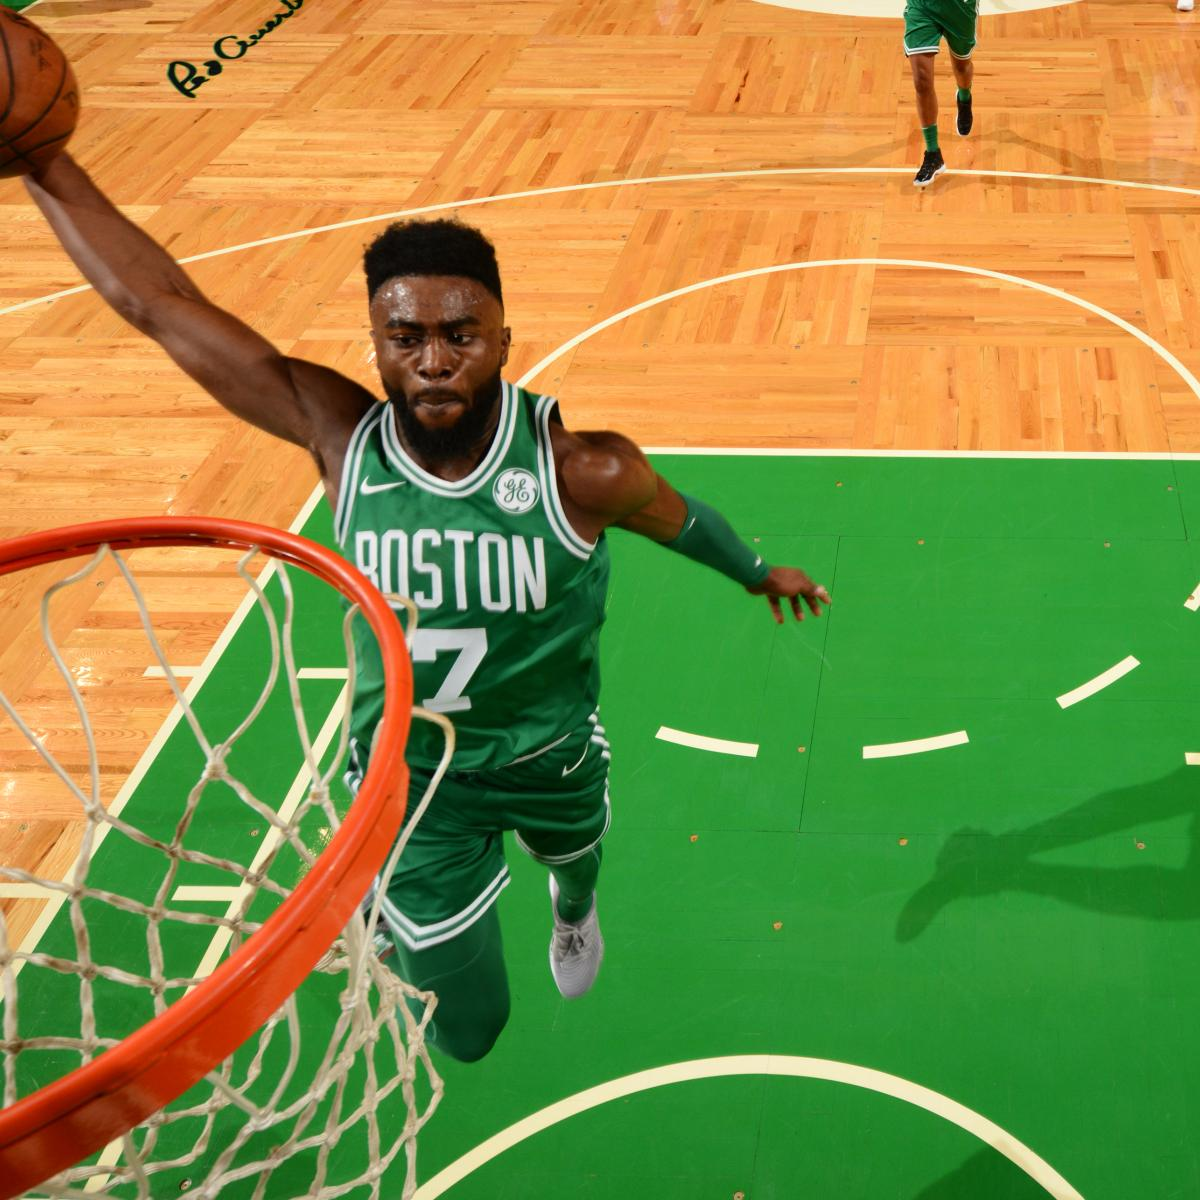 Warriors Come Out And Play Logo: Jaylen Brown Says He Played 'Inspired' Vs. Warriors After